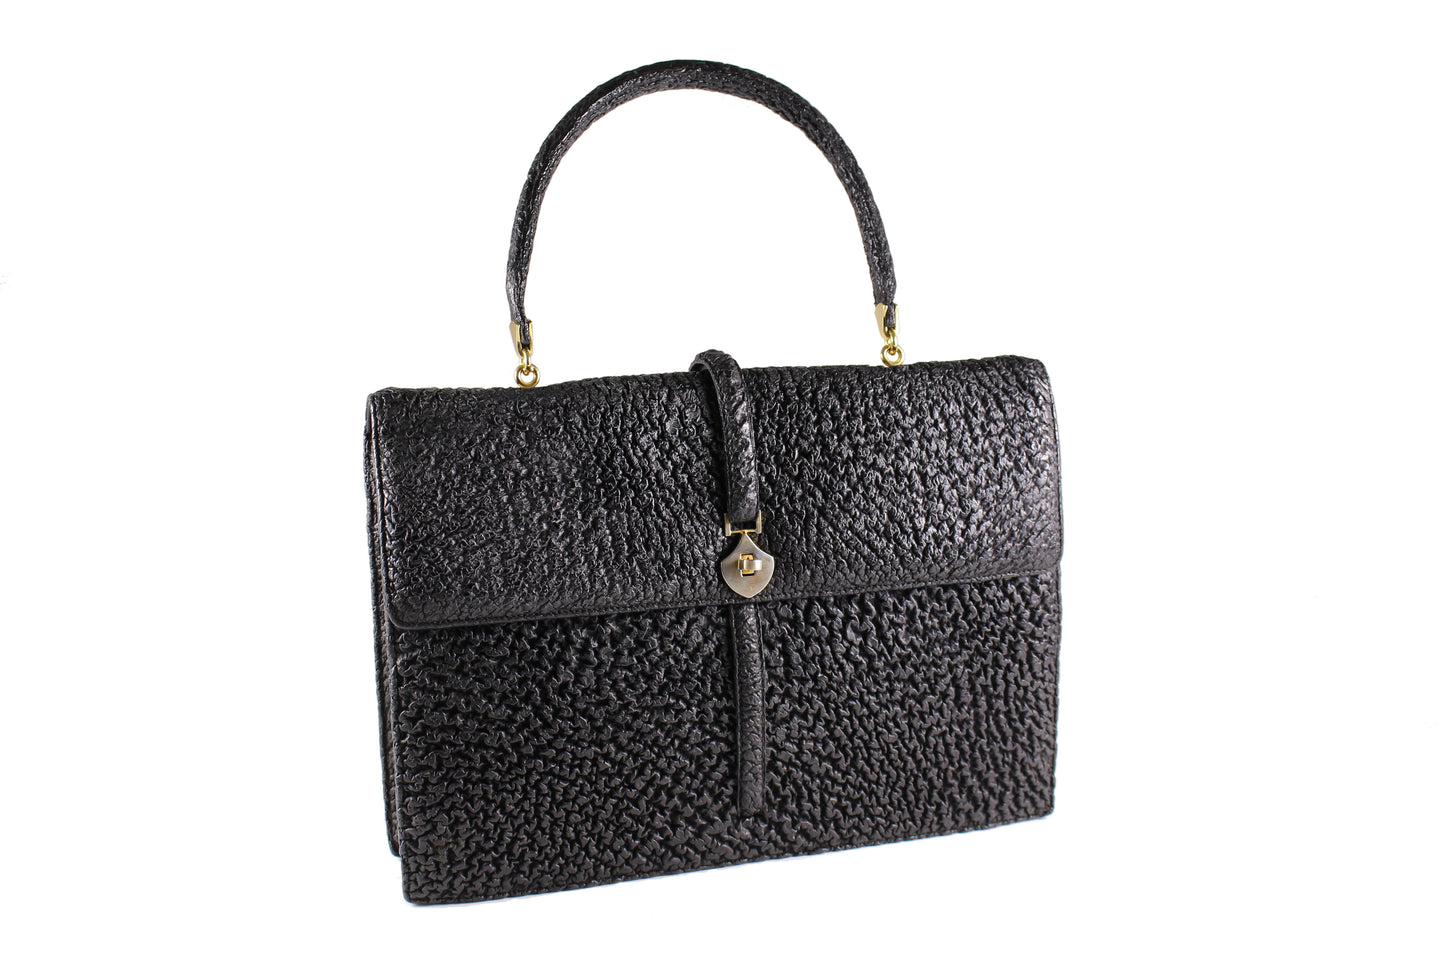 LOEWE black shark skin leather handbag